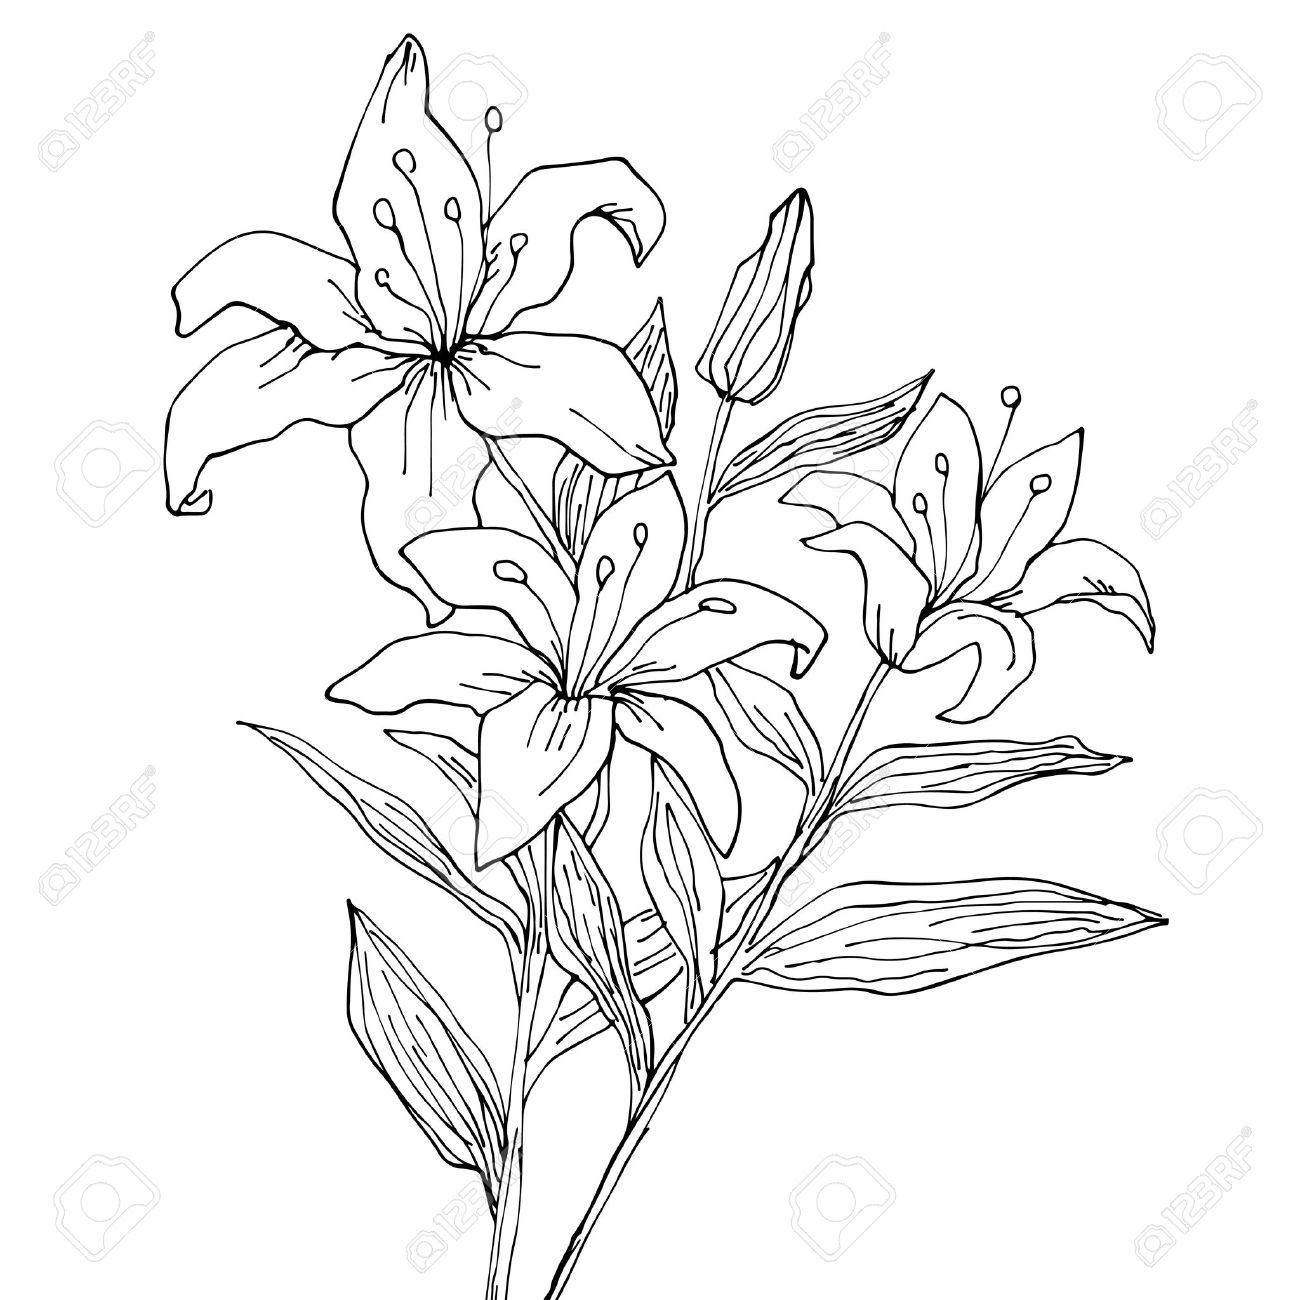 Tiger lilies drawing at getdrawings free for personal use 1300x1300 lily flowers isolated hand drawing illustration royalty free izmirmasajfo Images